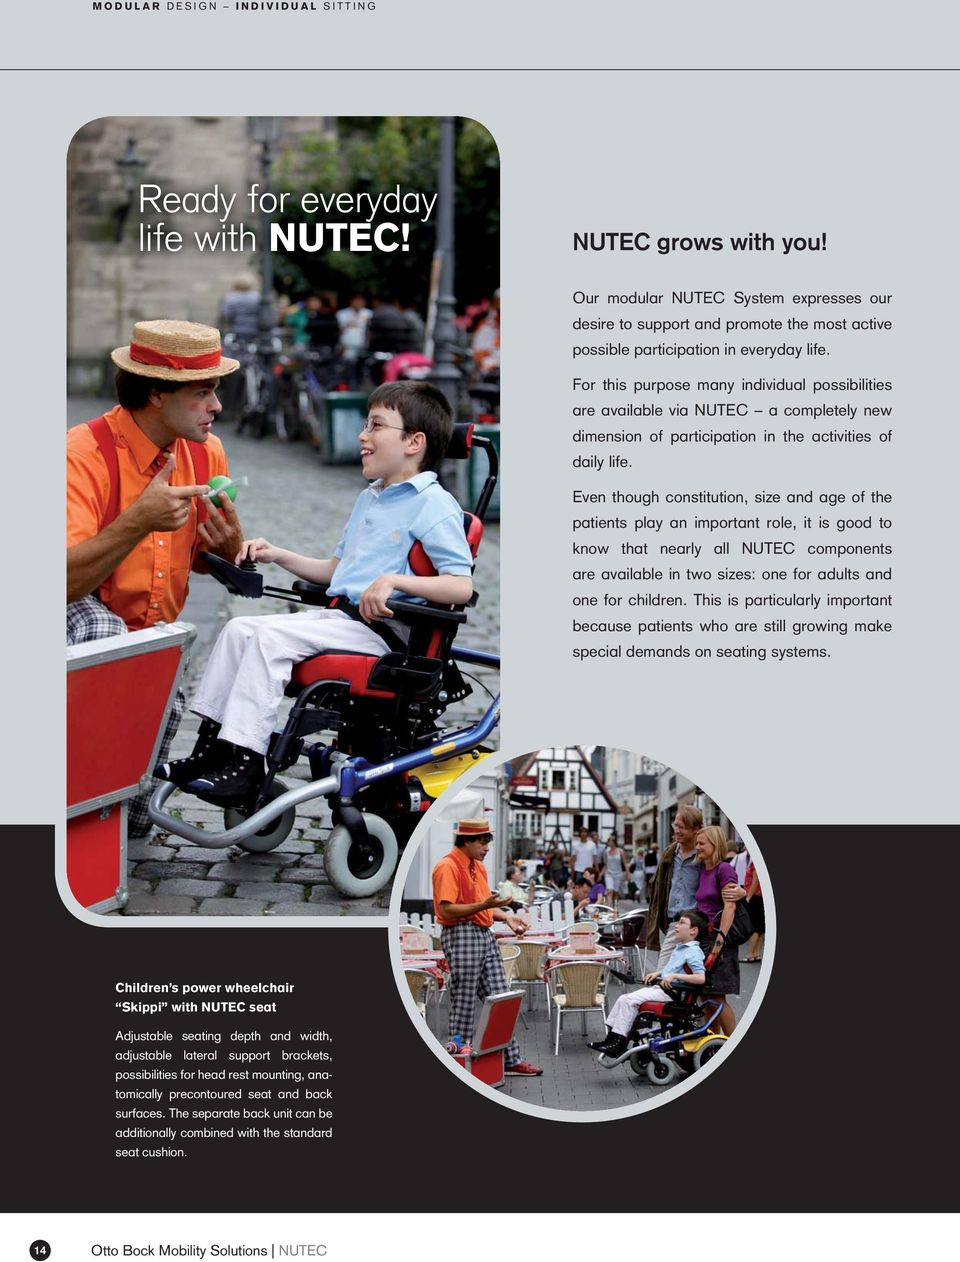 For this purpose many individual possibilities are available via NUTEC a completely new dimension of participation in the activities of daily life.